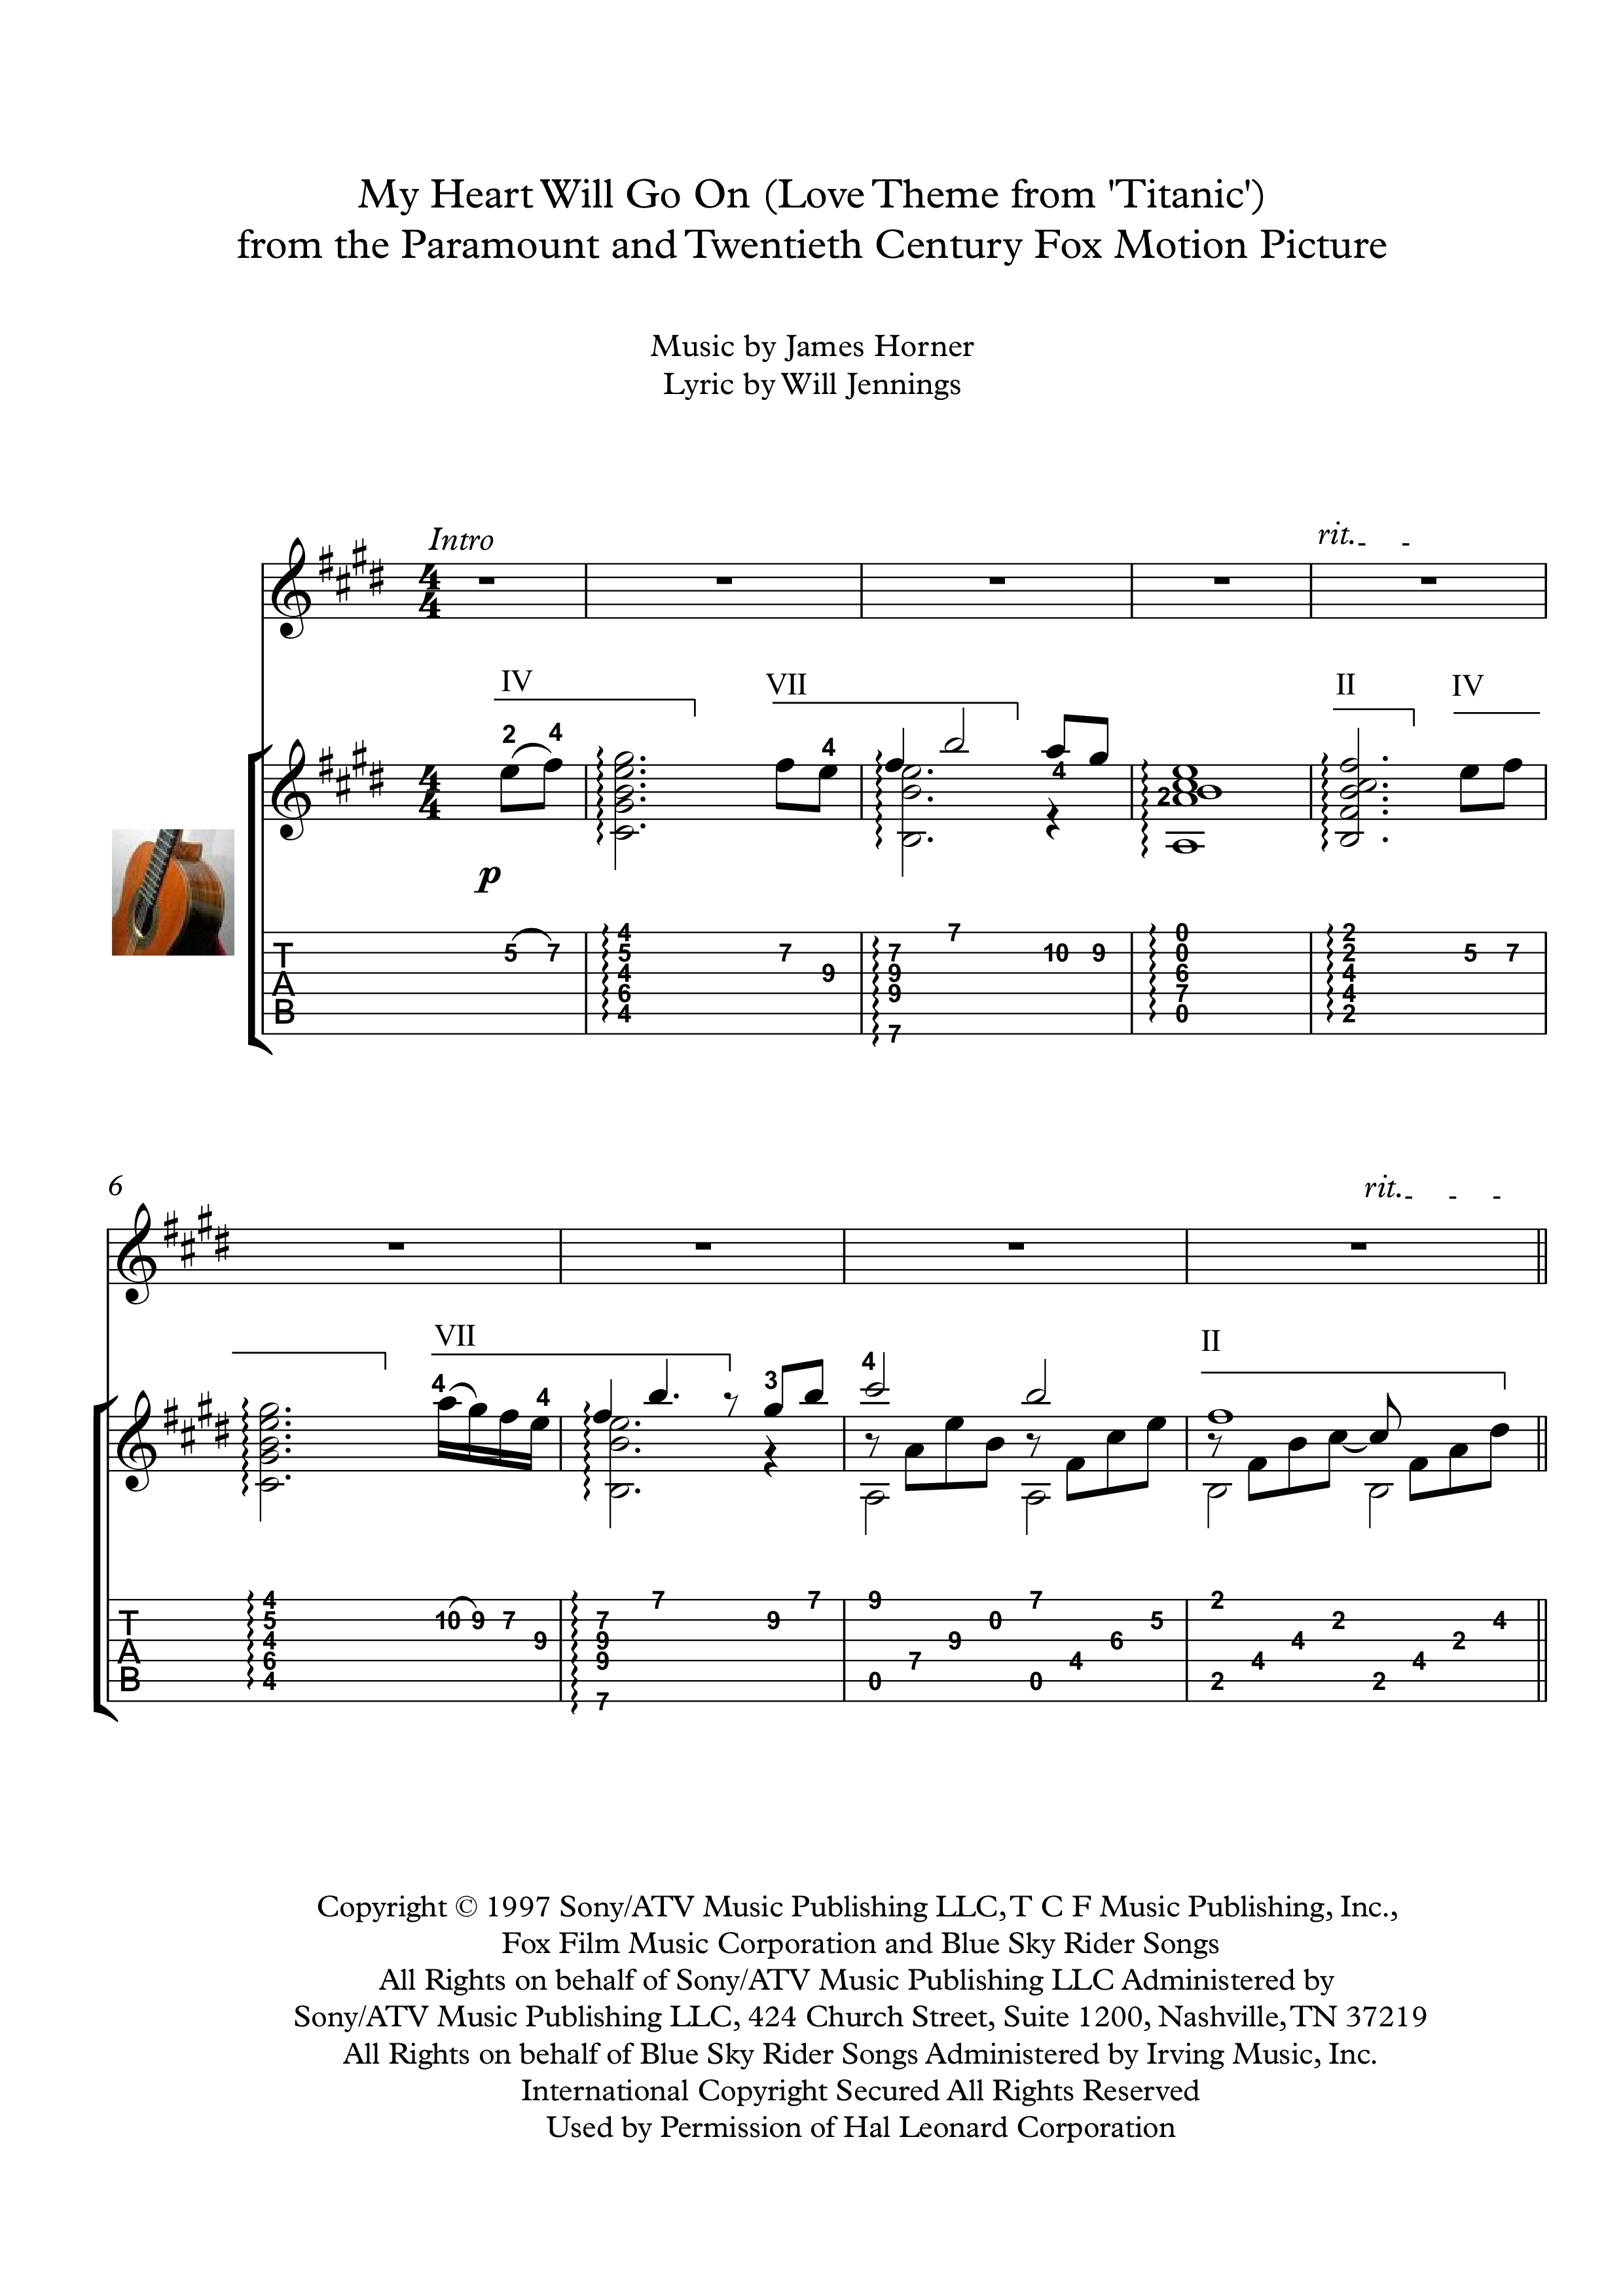 My Heart Will Go On Guitar Solo Sheet Music My Heart Will Go On Love